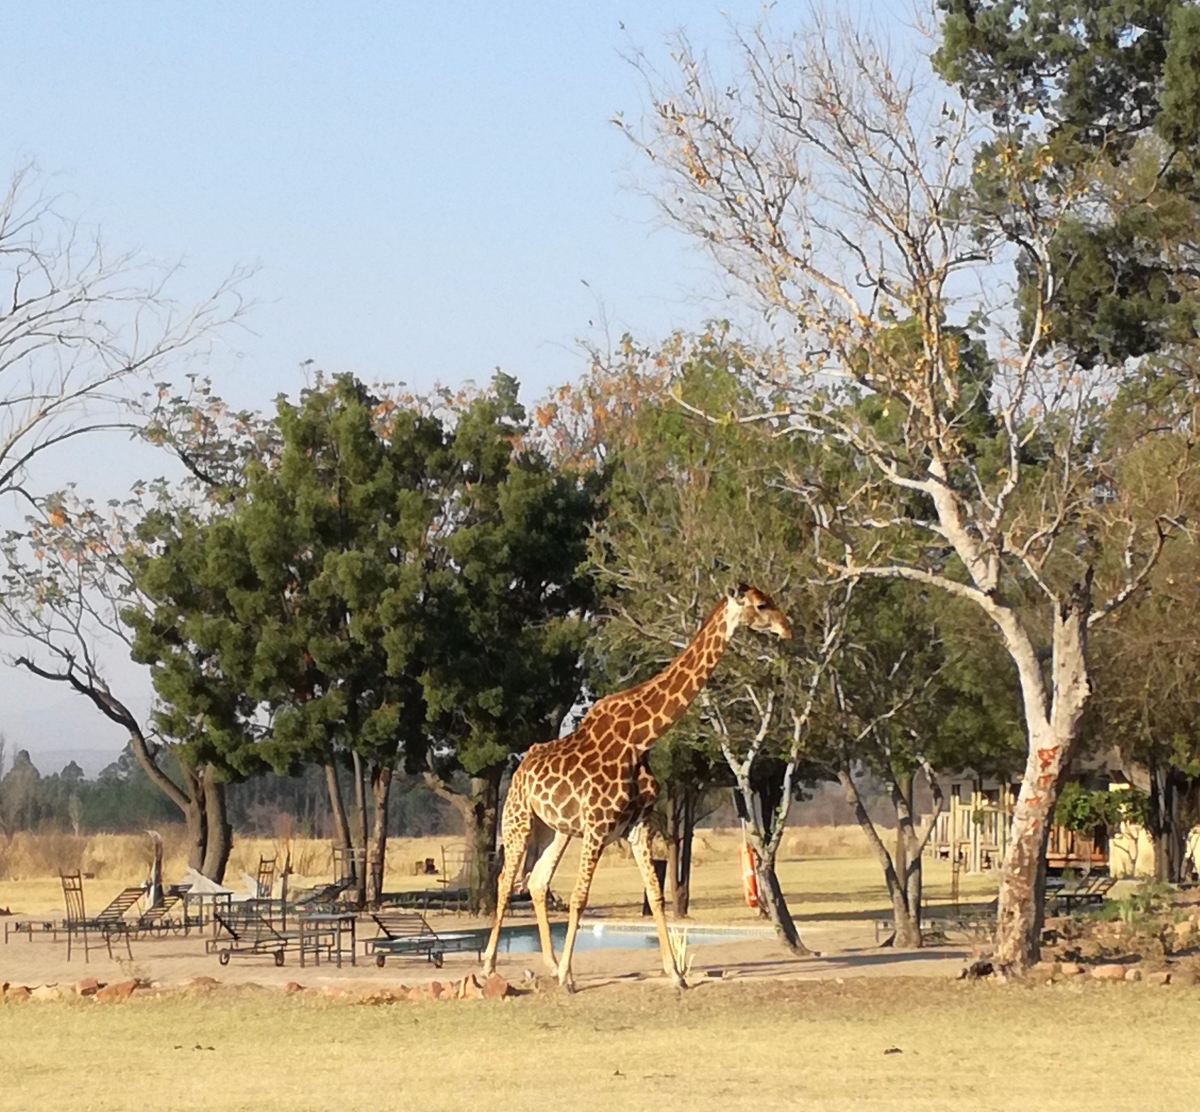 A giraffe near the swimming pool